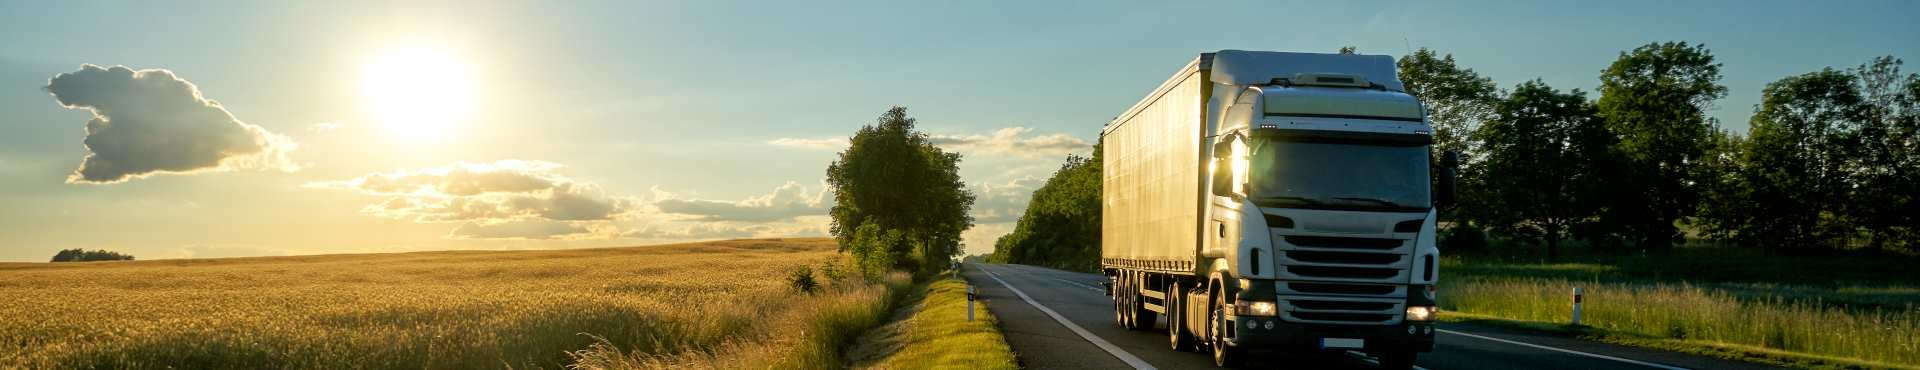 Truck driving down the highway | Shine Lawyers